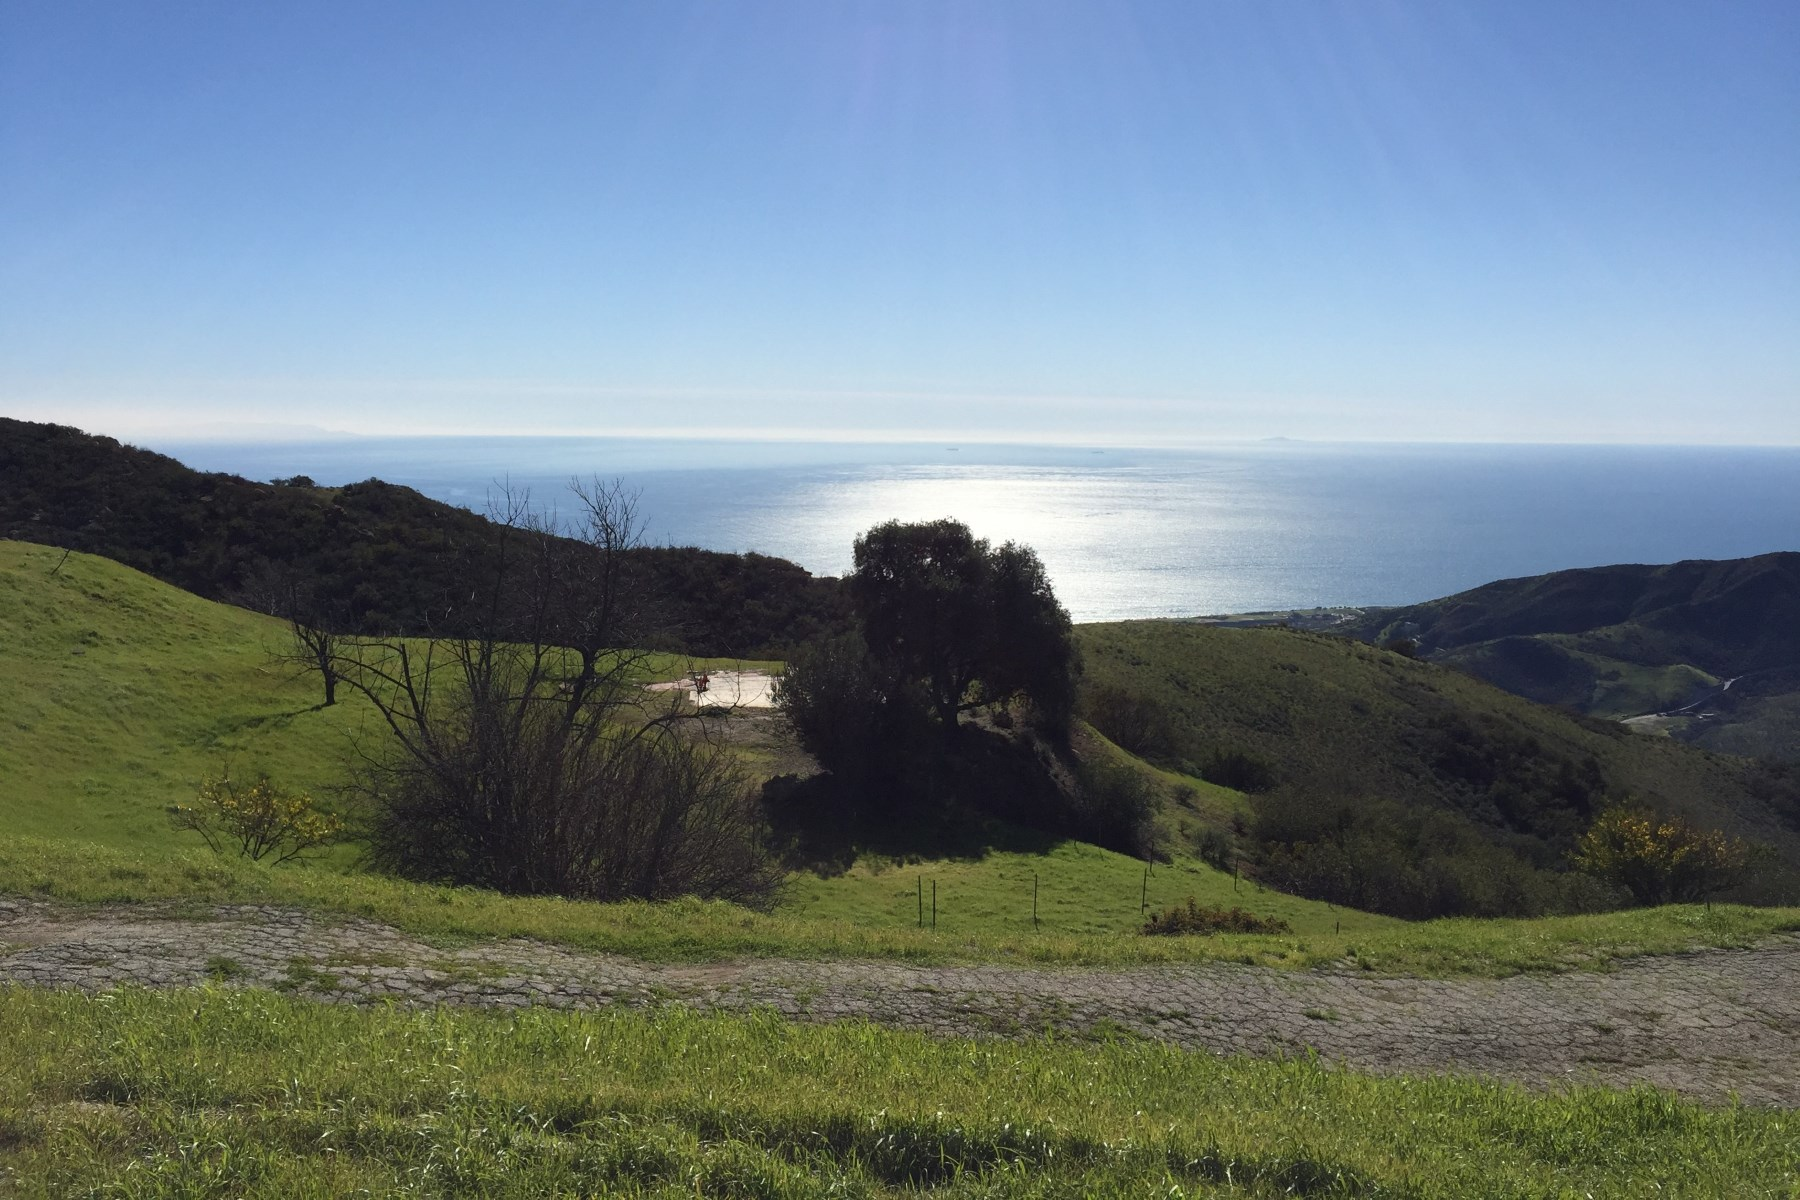 Land for Sale at 80 Acre Potential Ranch 24800 Piuma Rd, Malibu, California, 90265 United States